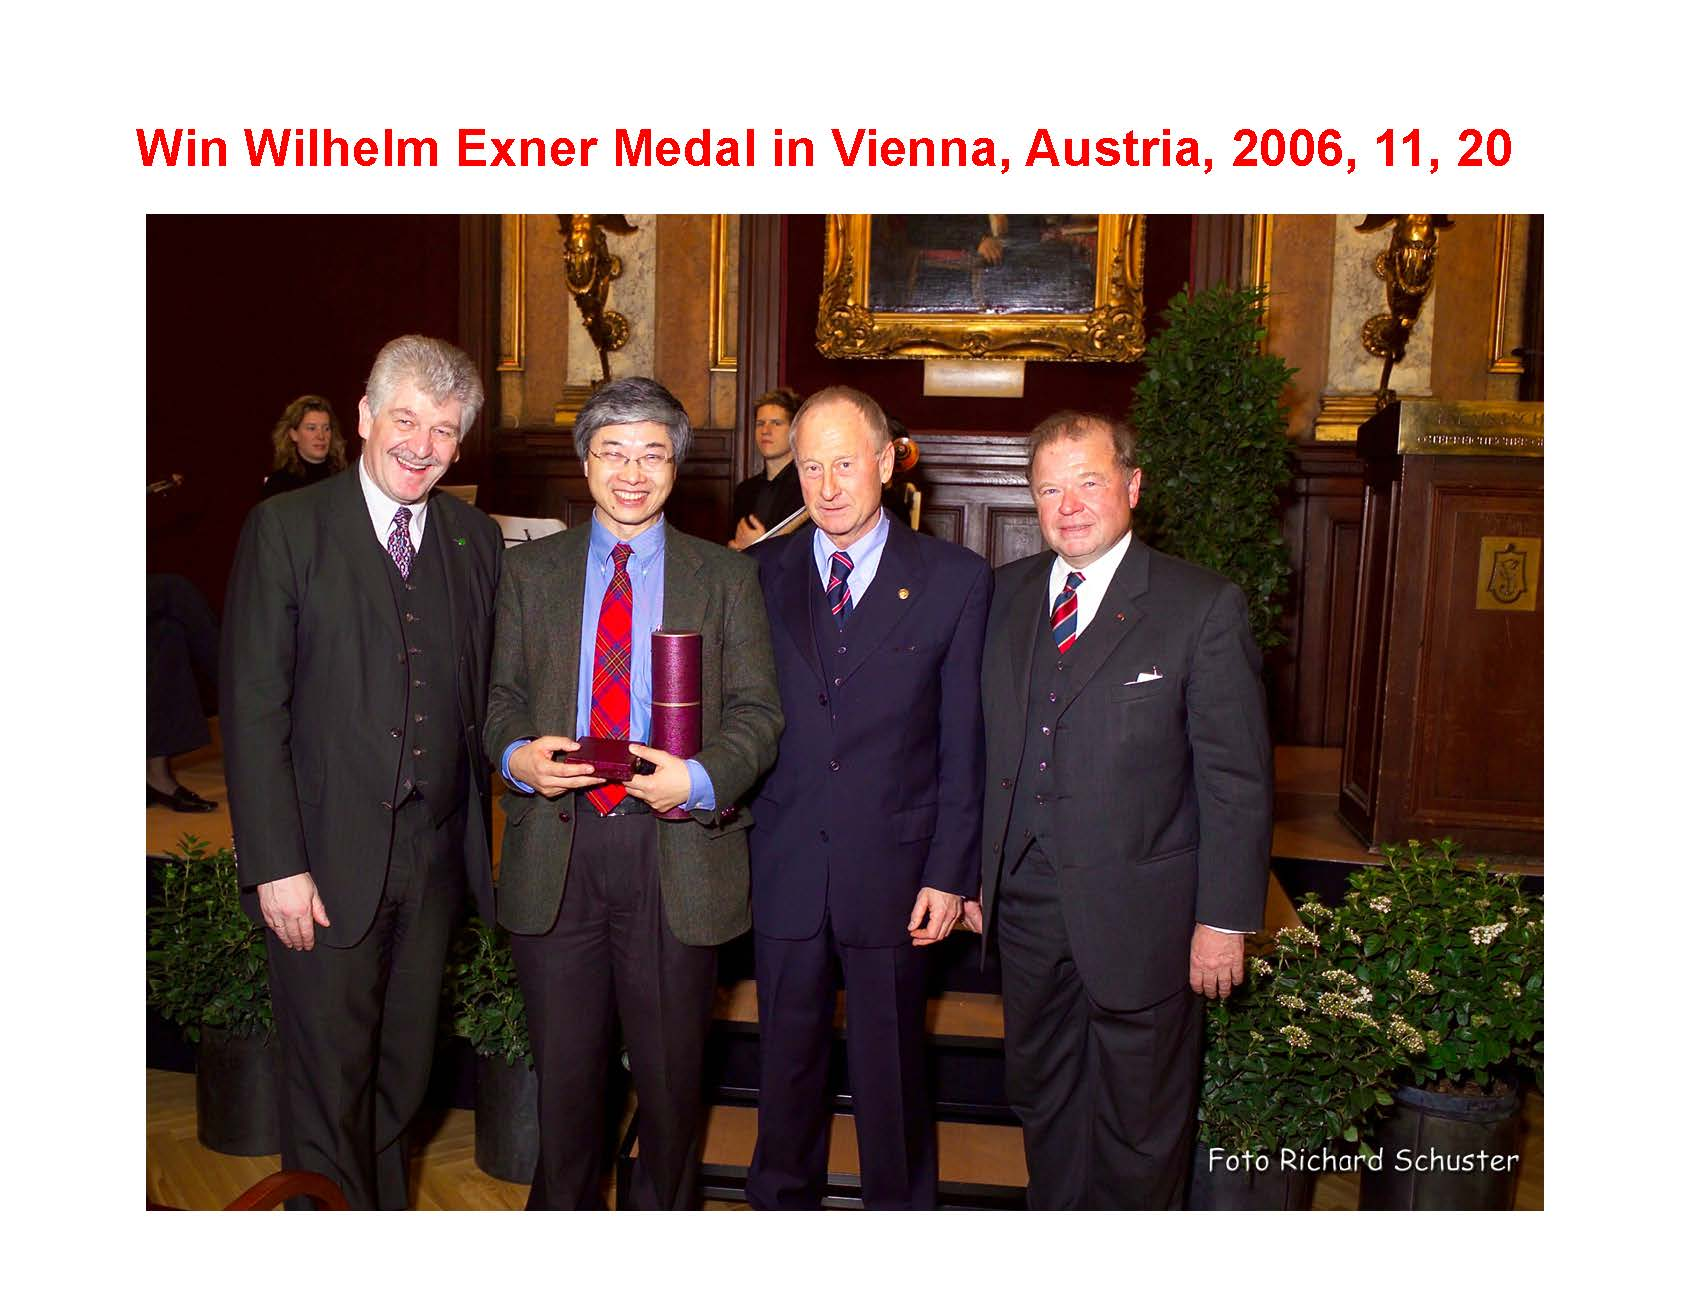 Receiving the Exener Medal, Vienna, Austria, 2006.